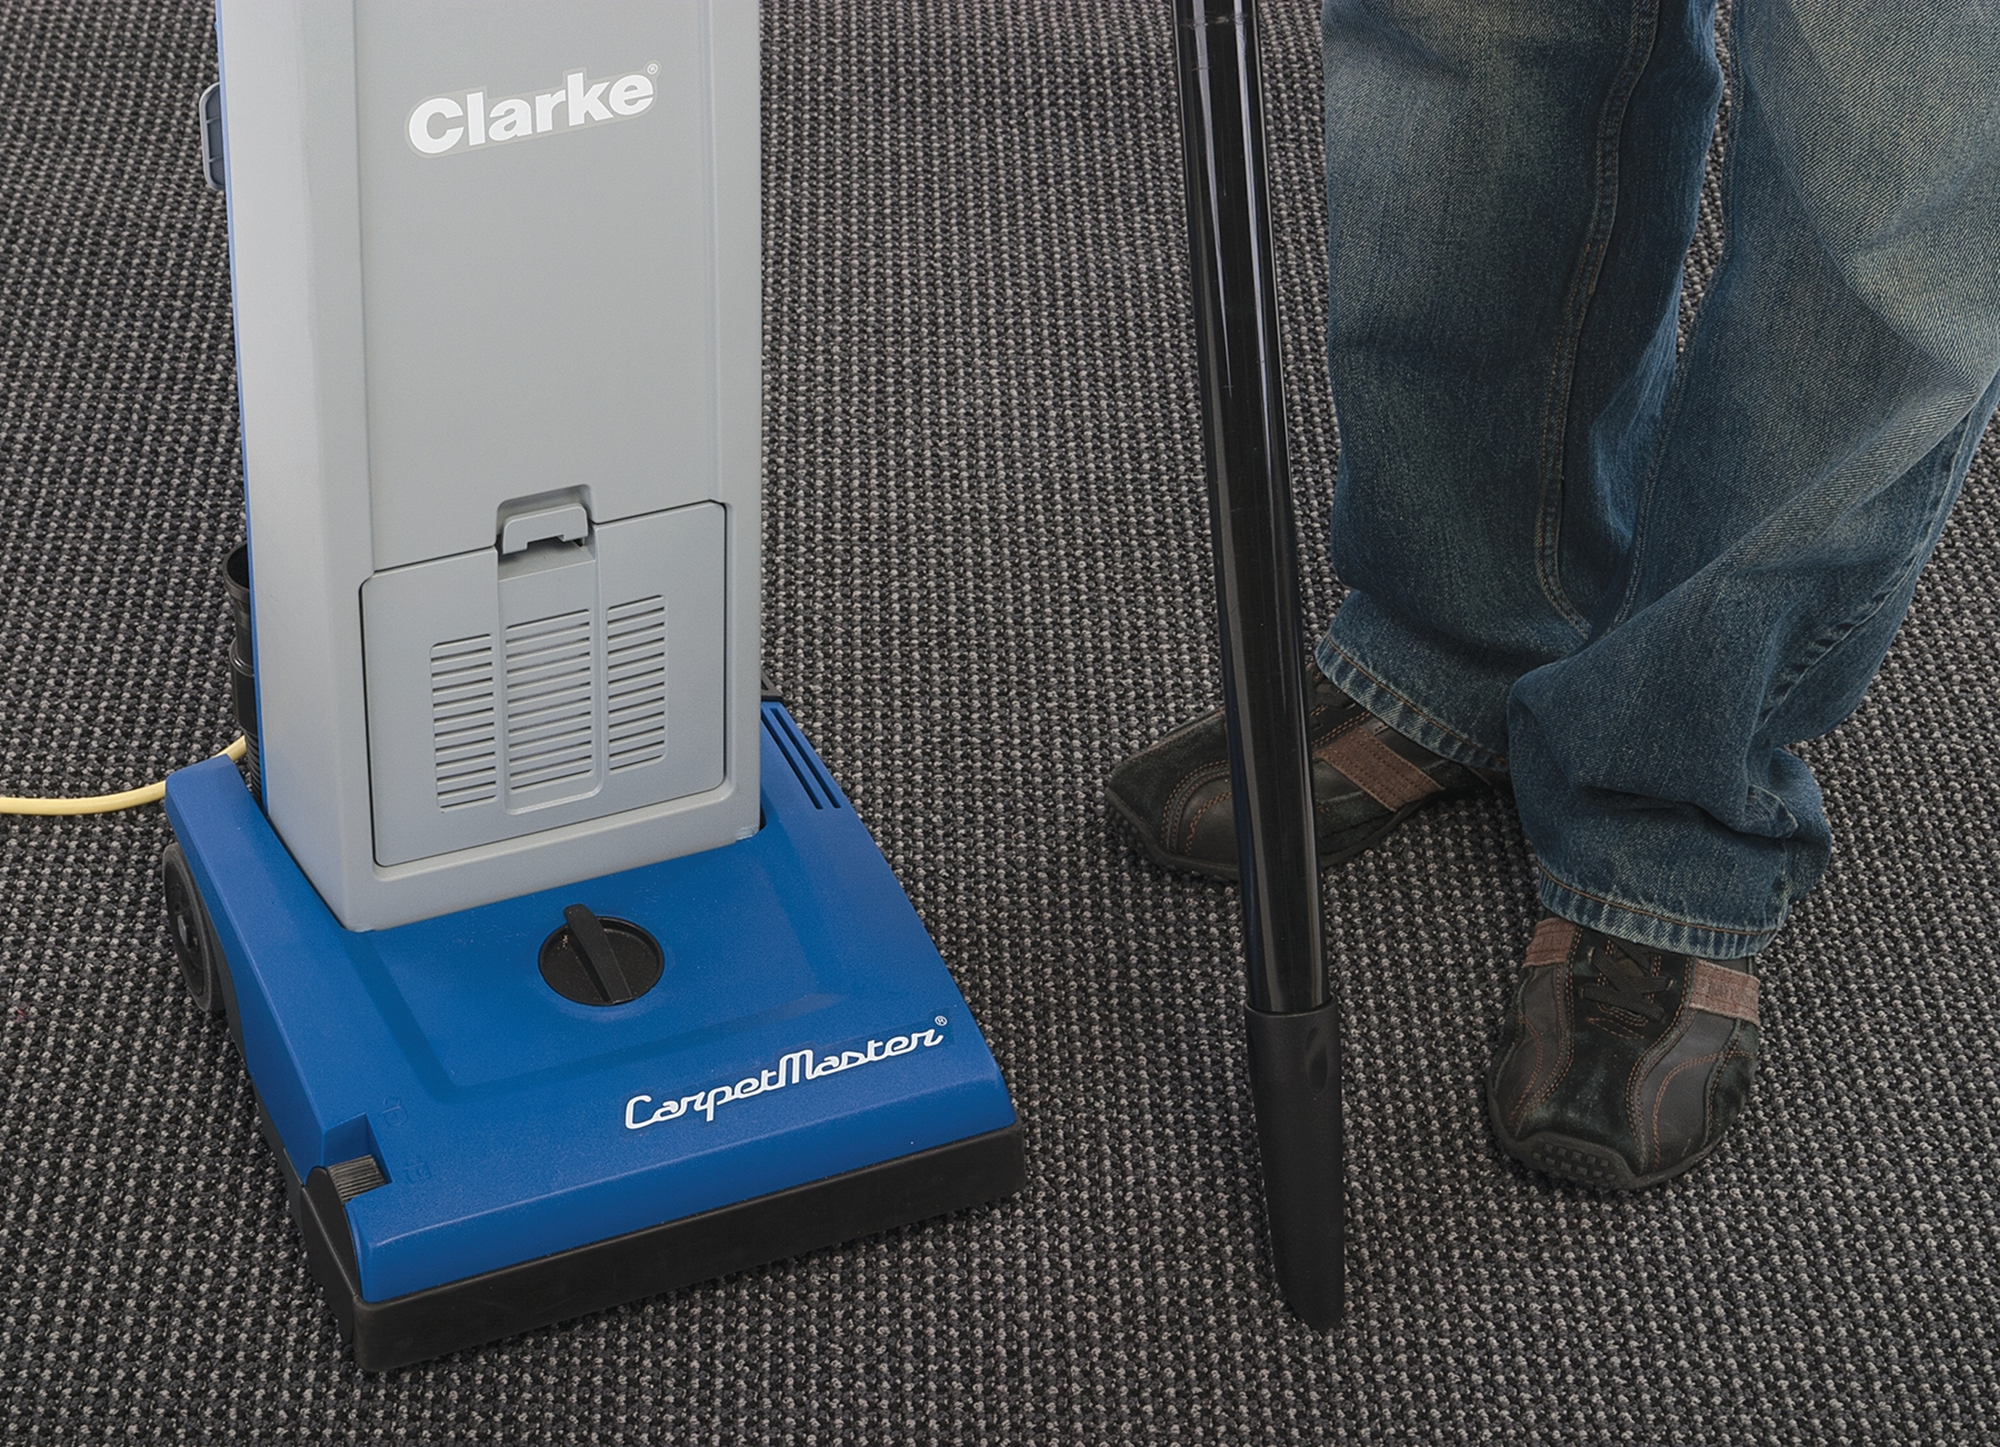 Product, Carpet Cleaning, Commercial Vacuum Cleaners, Upright Vacuum Cleaners, Nilfisk, CARPETMASTER 112